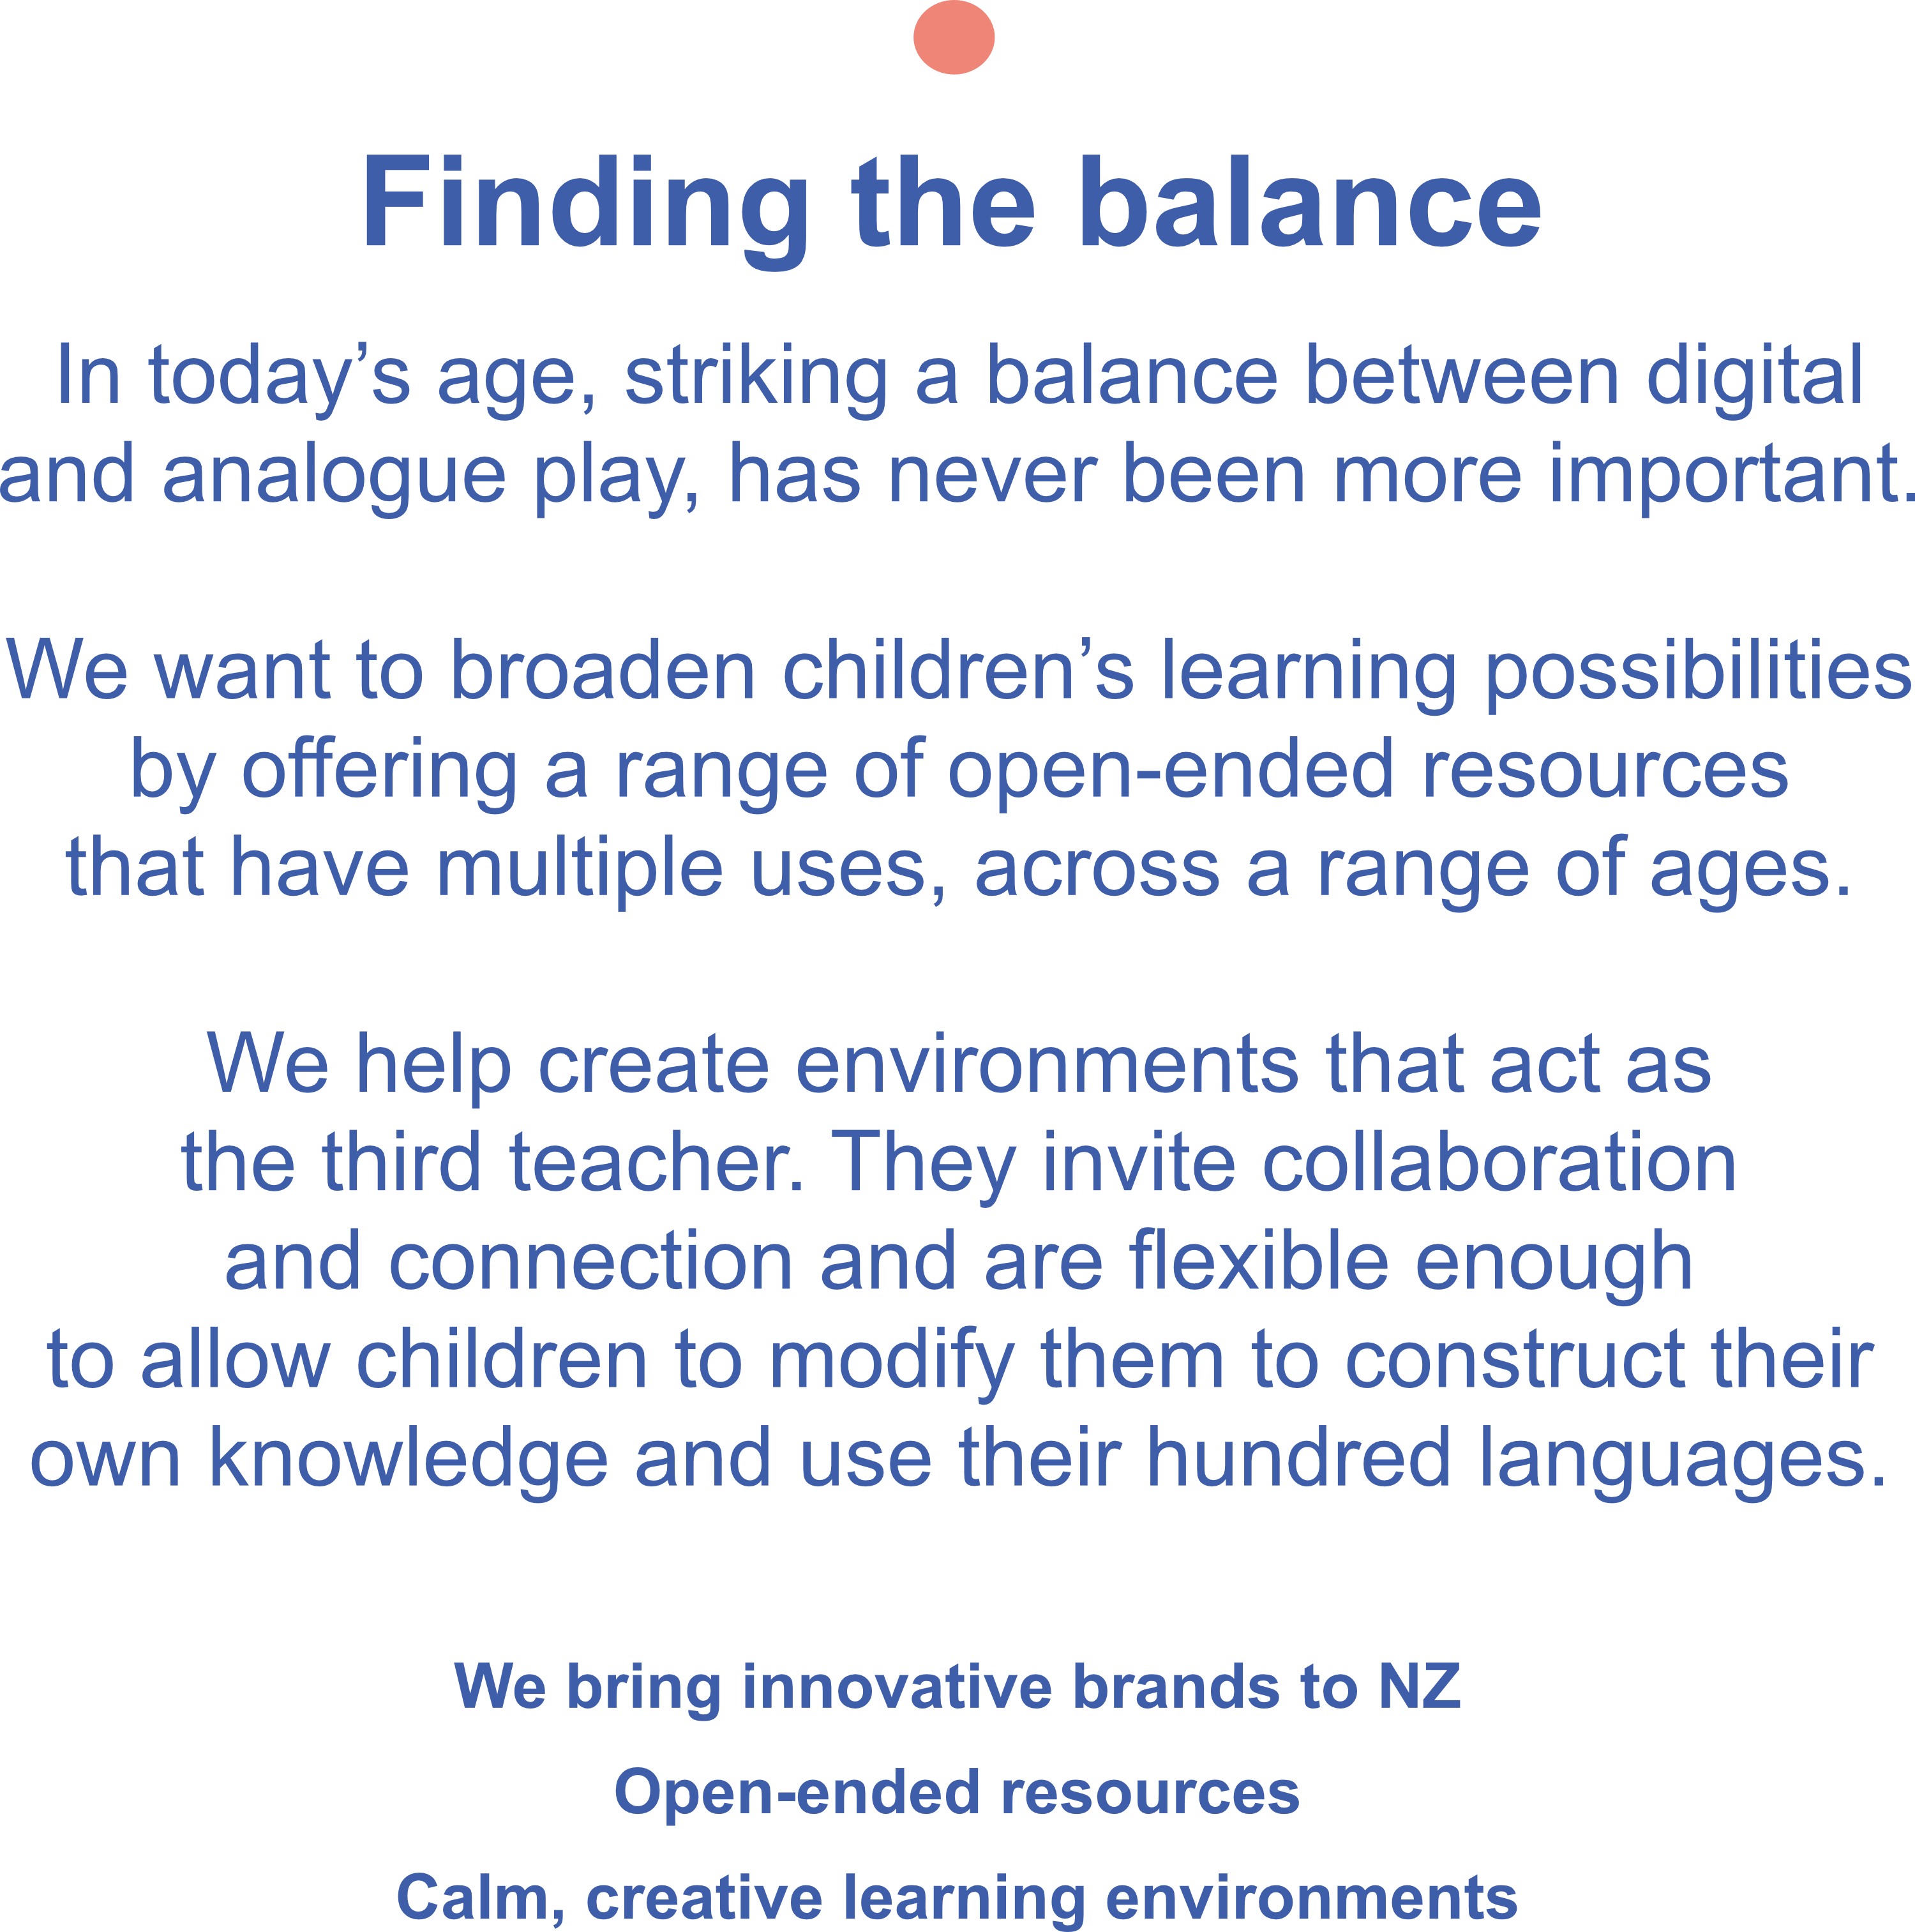 Find the balance. In today's age, striking a balance between digital and analogue play, has never been more important.  We want to broaden children's learning possibilities by offering a range of open-ended resources that have multiple uses, across a range of ages.  We help create environments that act as the third teacher. They invite collaboration and connection and are flexible enough to allow children to modify them to construct their own knowledge and use their hundred languages. We bring innovative brands to NZ Open-ended resources Calm, creative learning environments